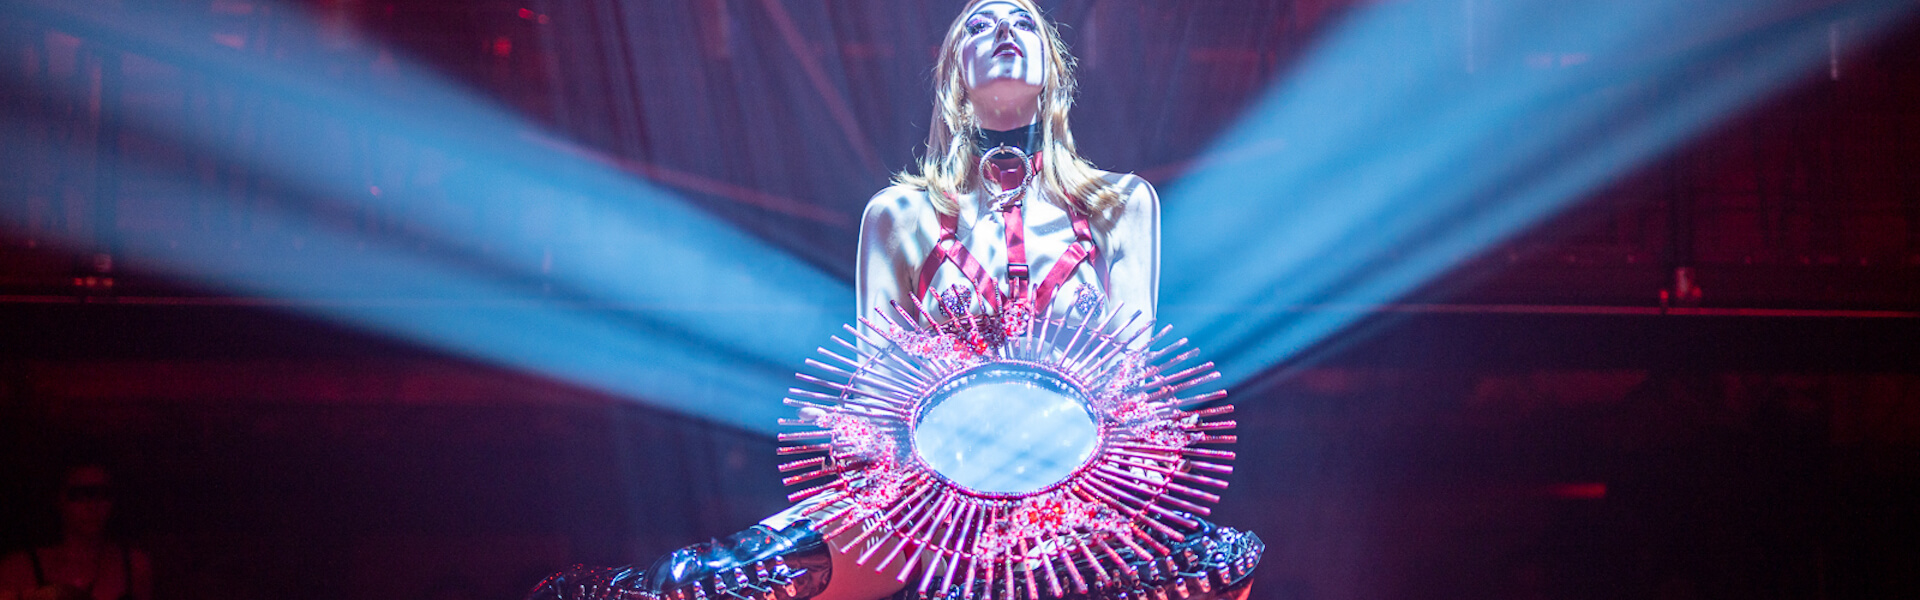 A woman in red harness lingerie holds a sun burst mirror and gazes into the spotlight